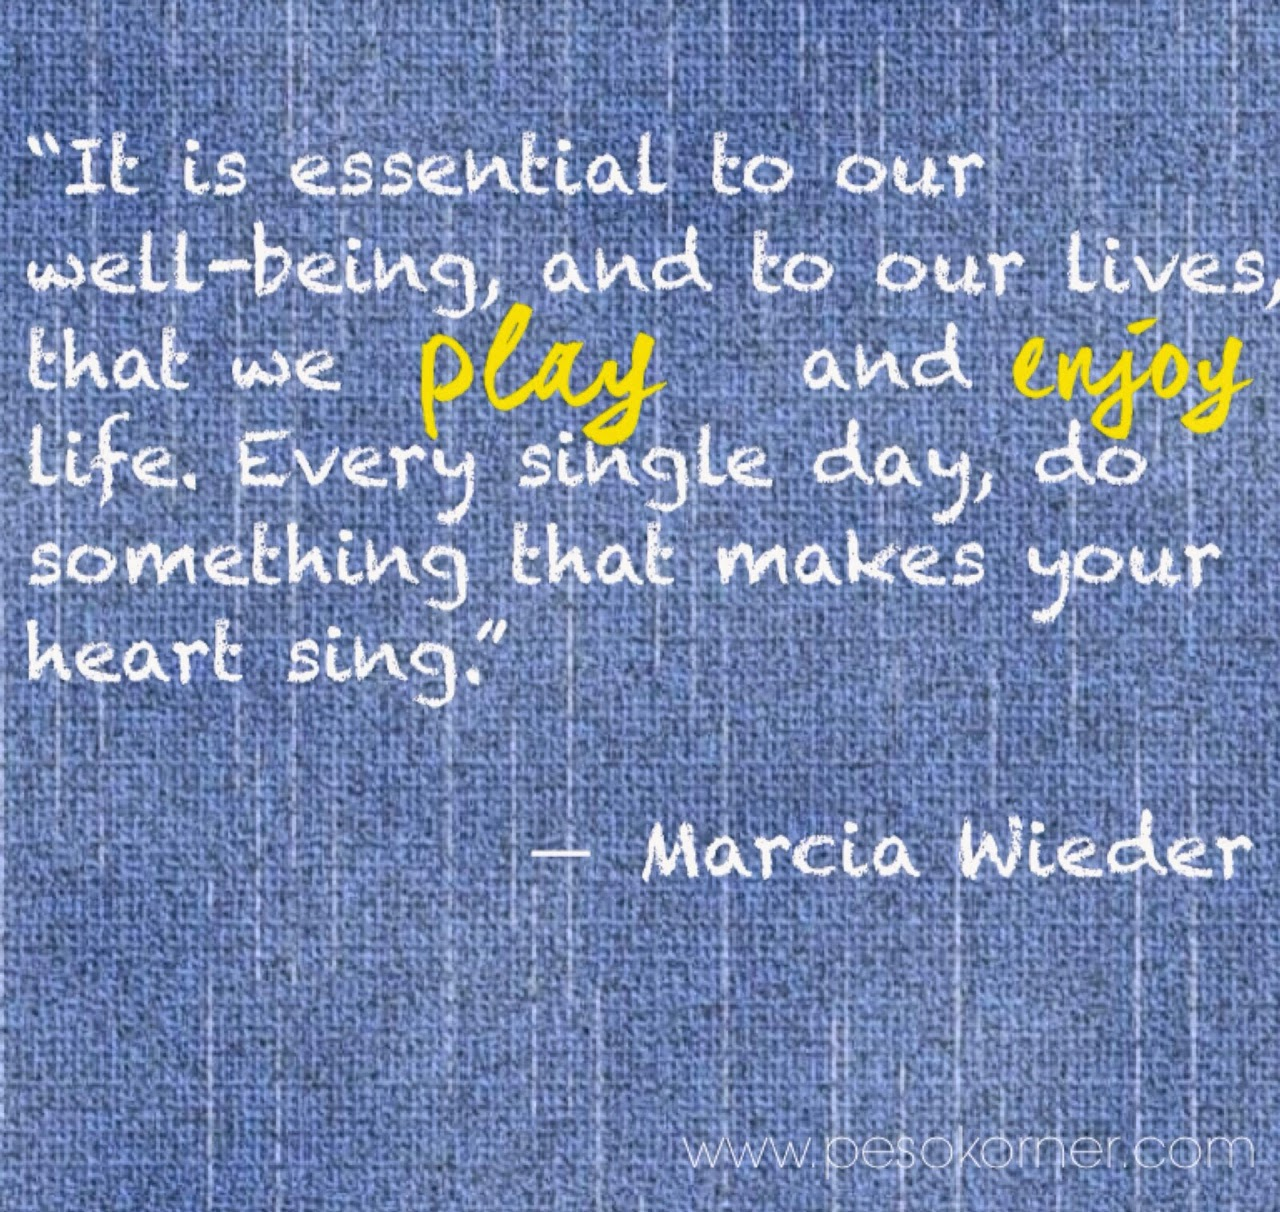 wellbeing quote